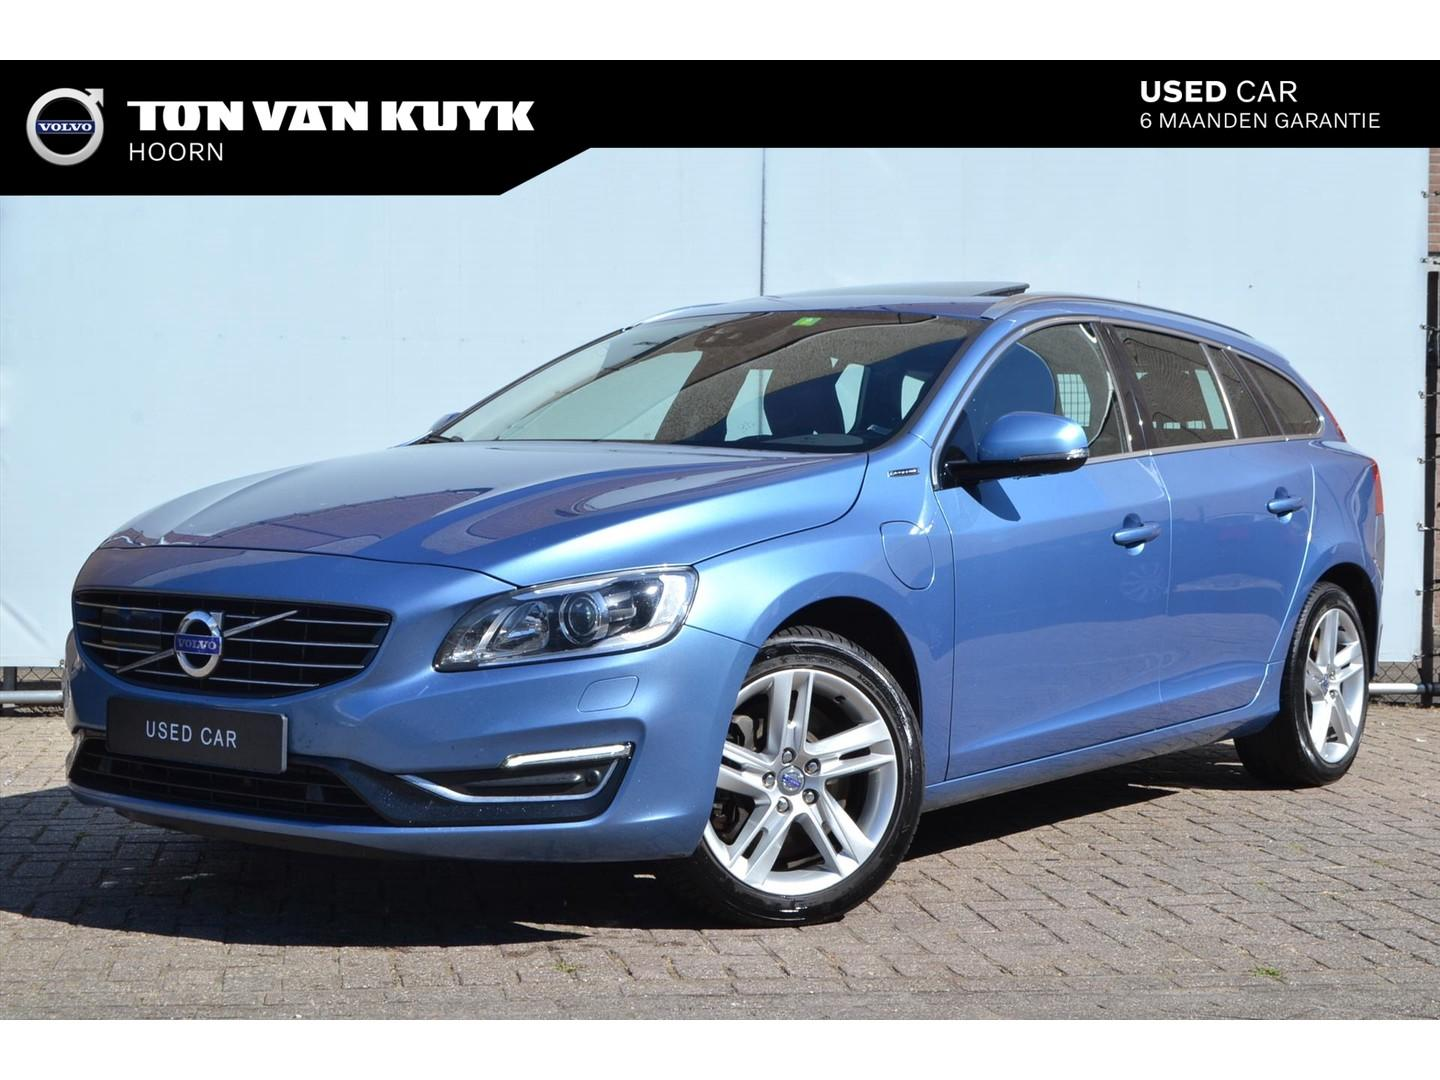 Volvo V60 D6 plug-in hybrid 283pk automaat awd / summum / drivers support